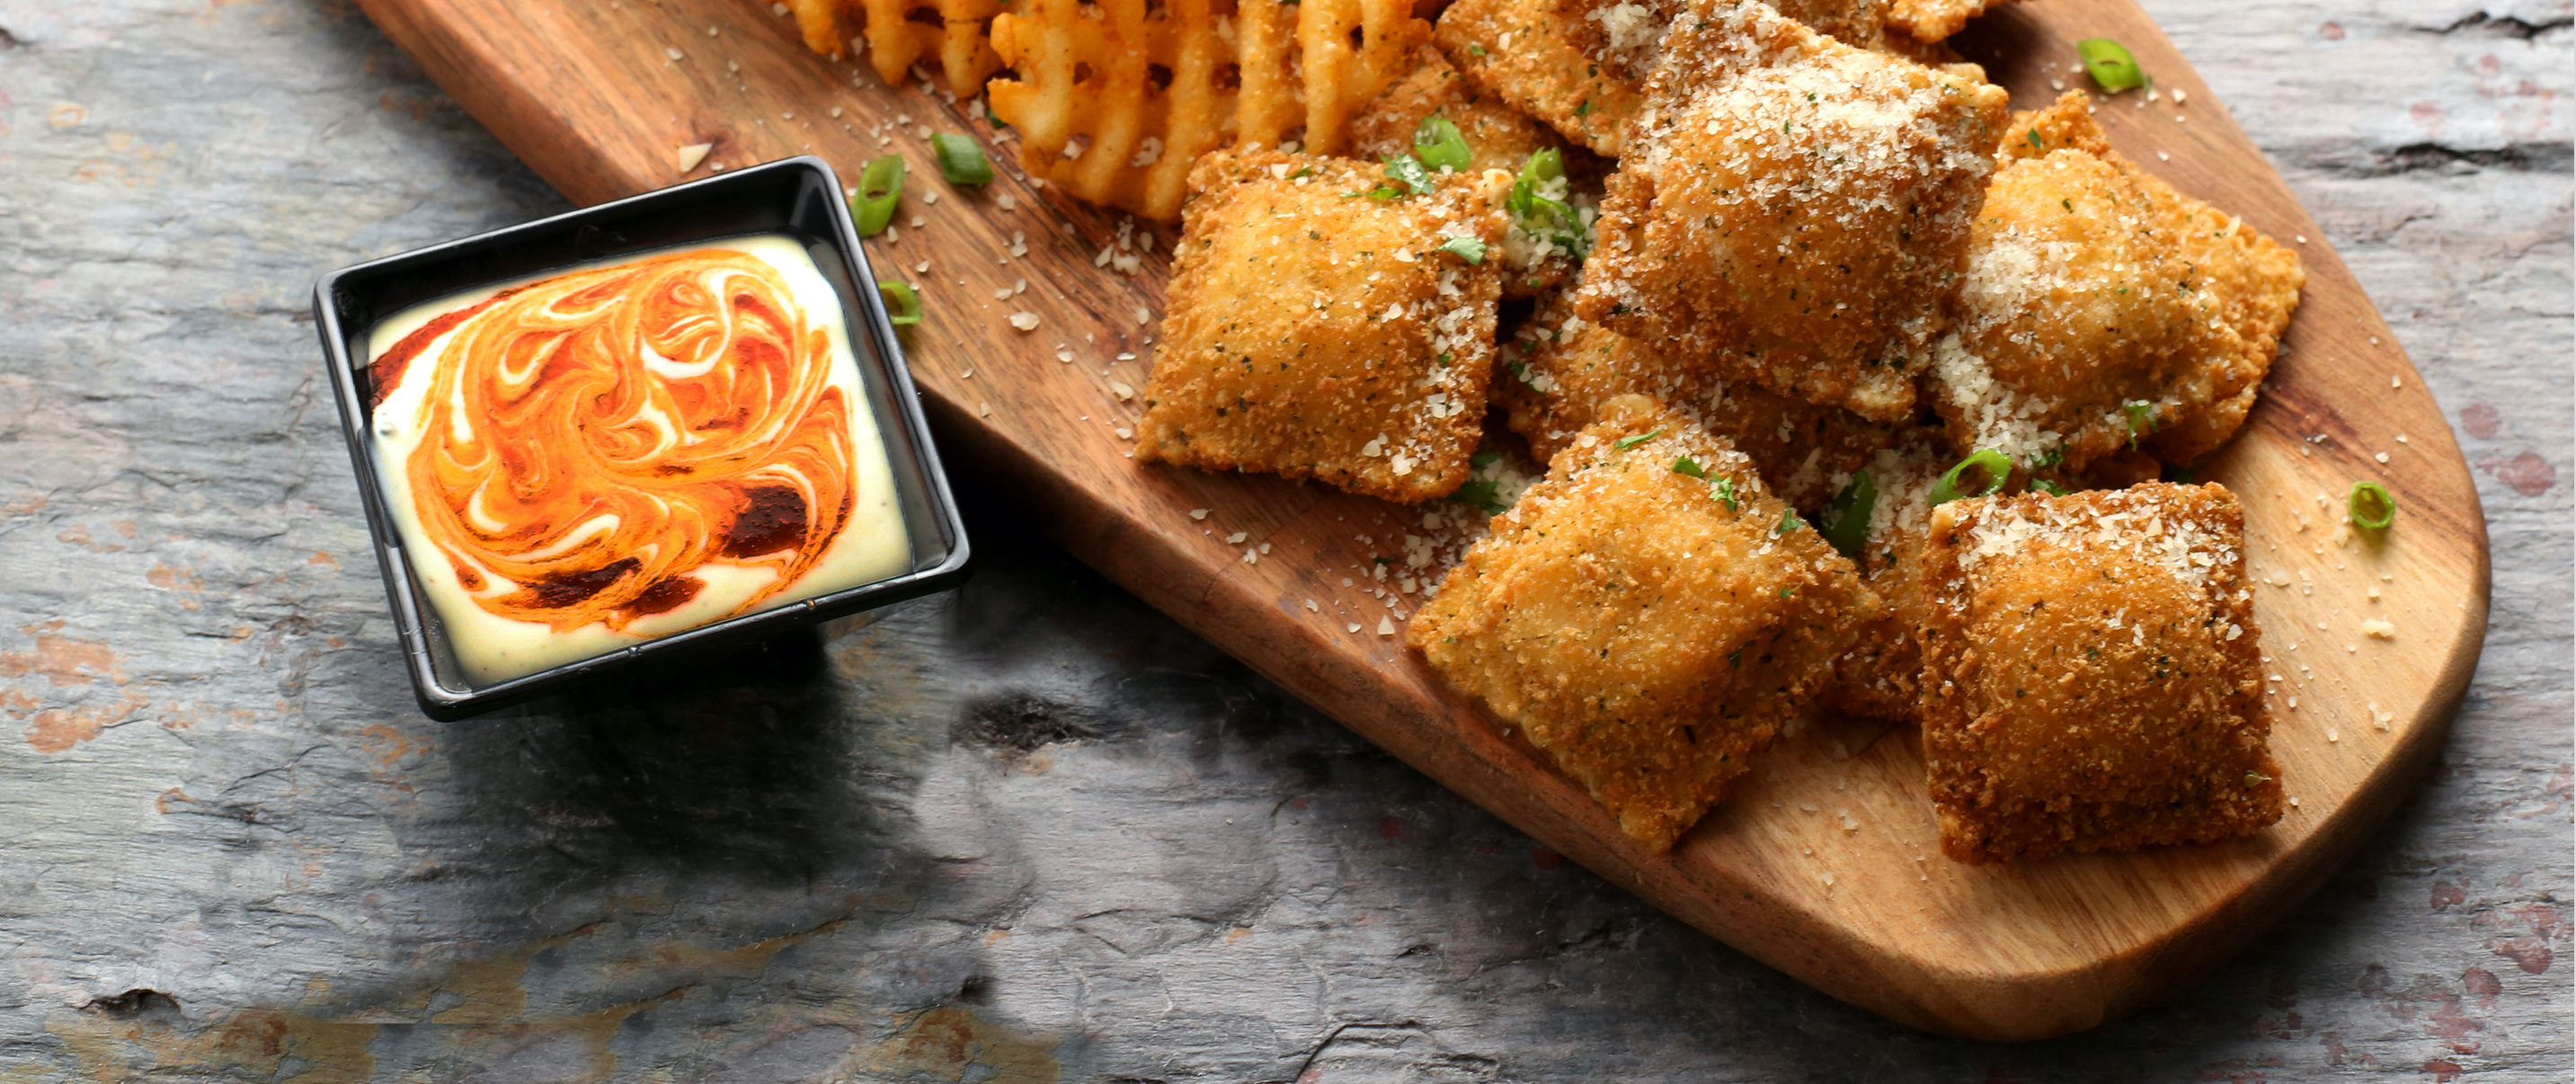 A plate of toasted appetizers with Parmesan cheese sprinkled on top.